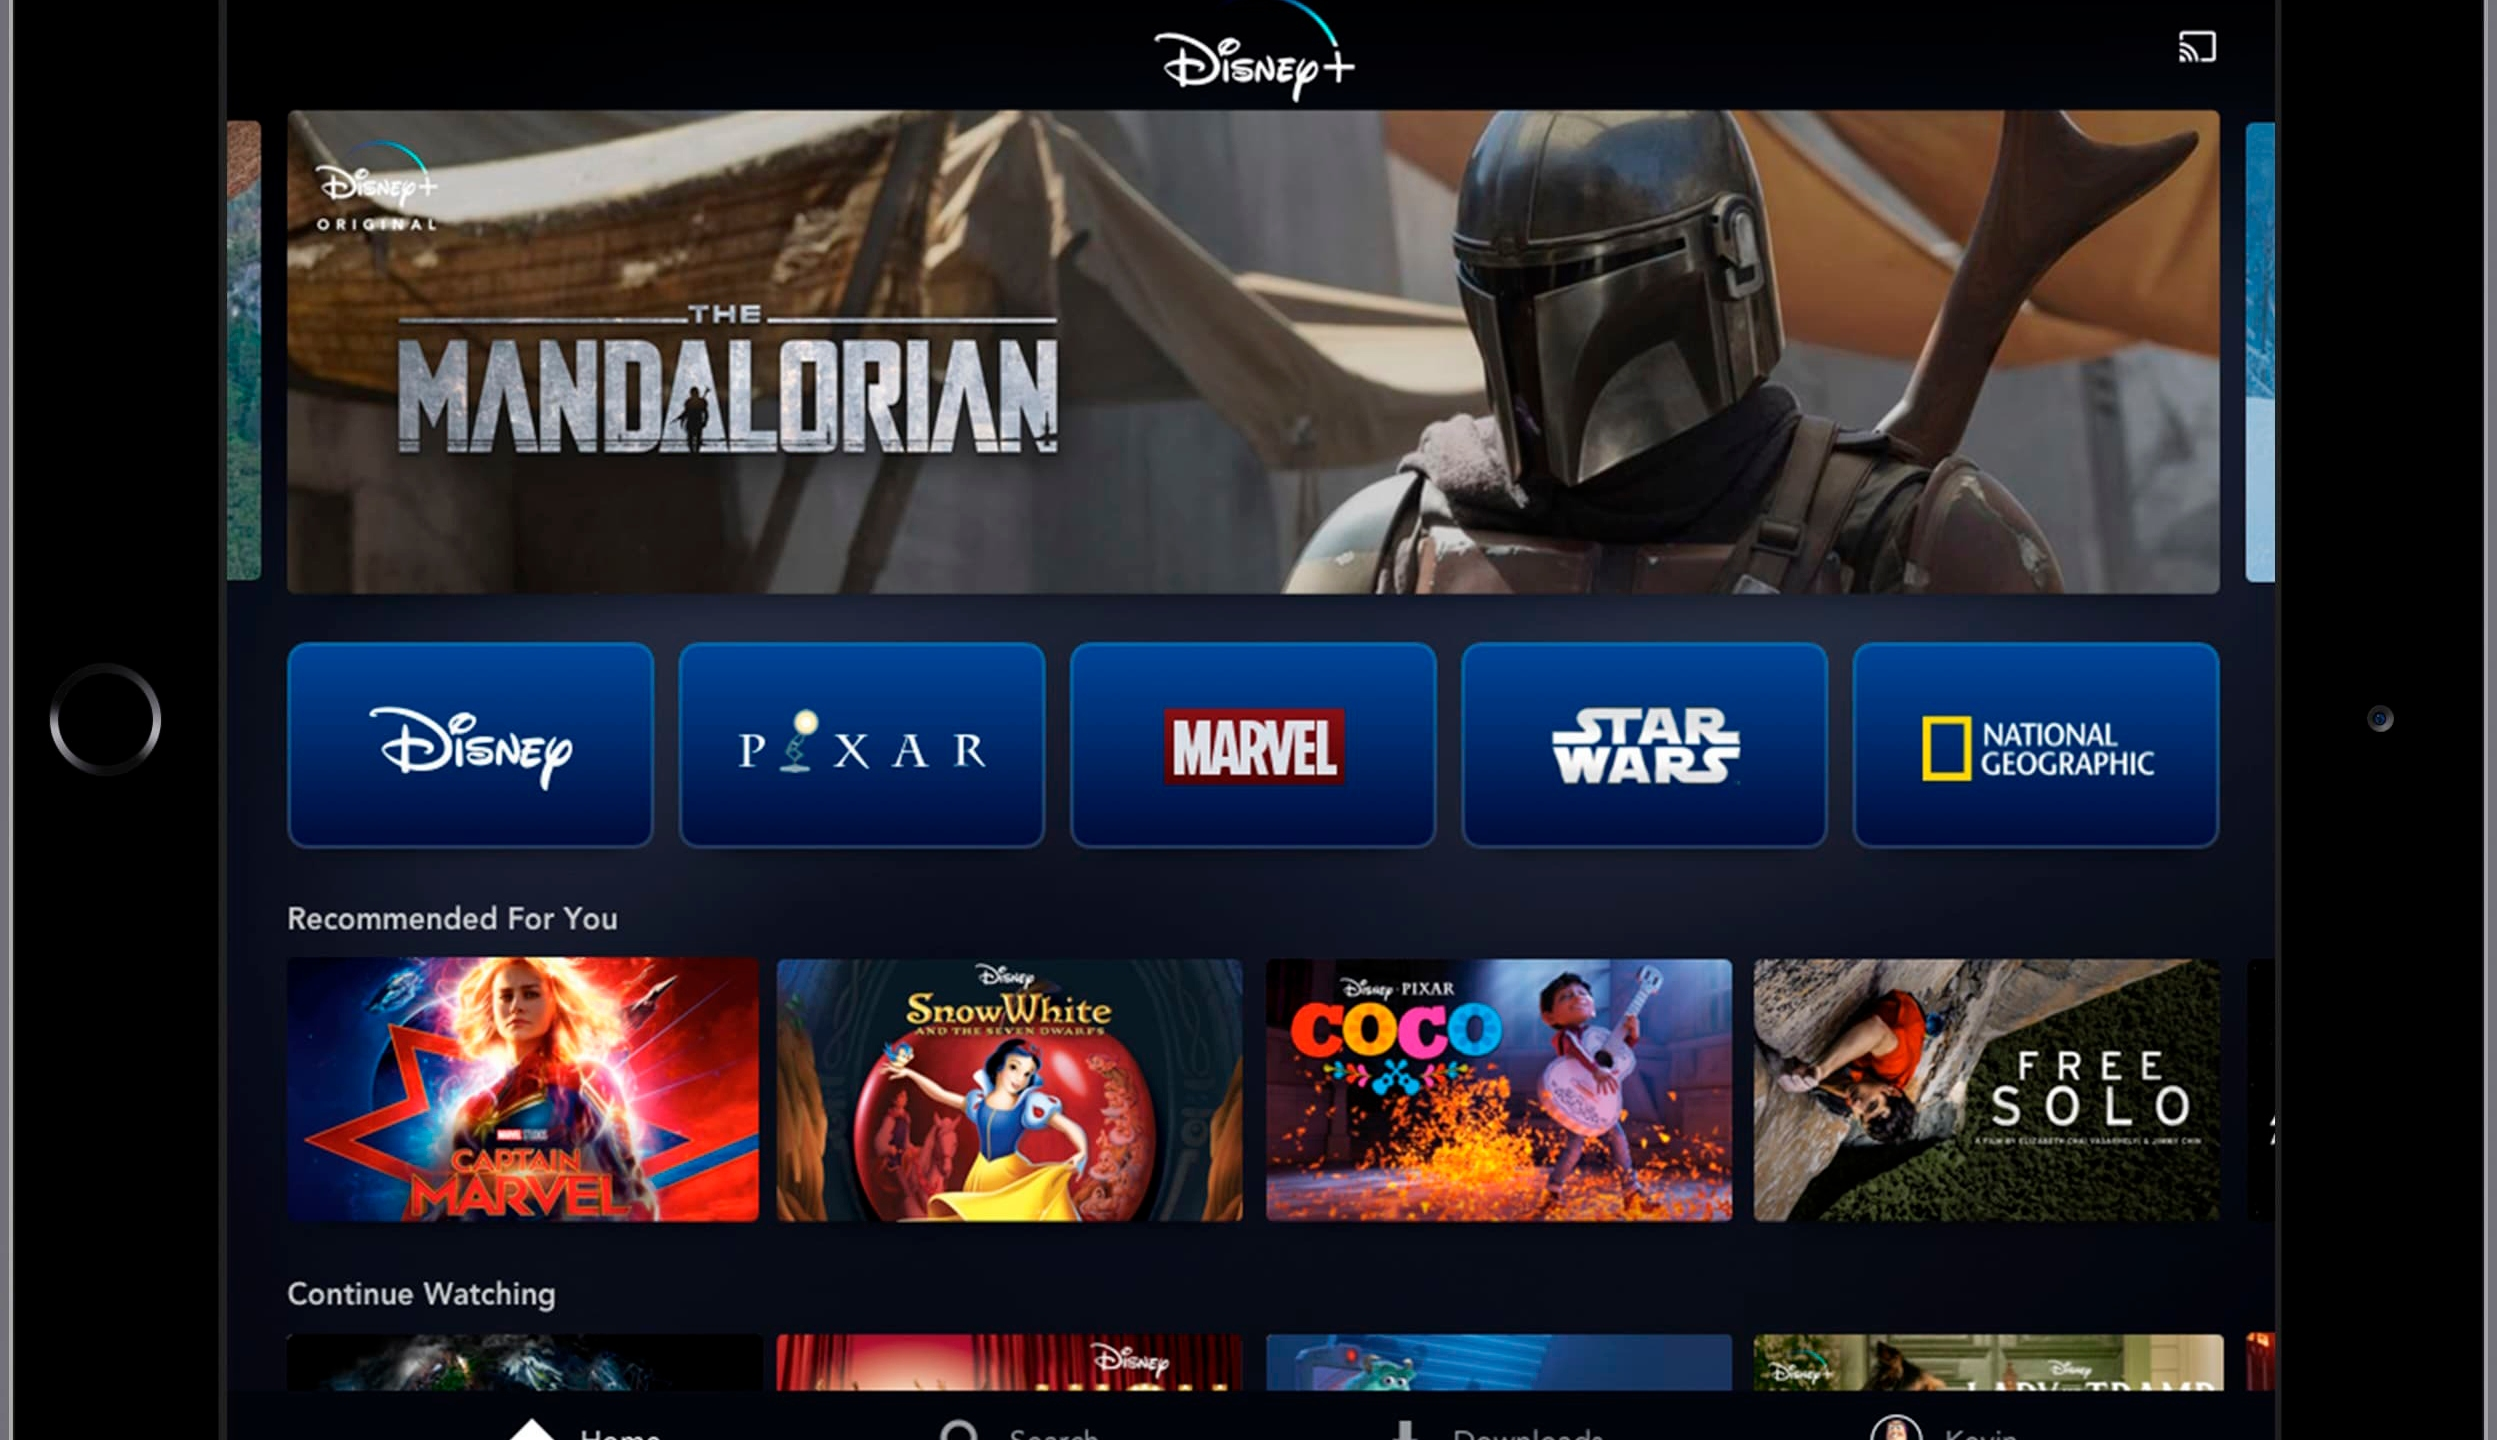 Disney_Streaming_Service_68484-159532.jpg71578156